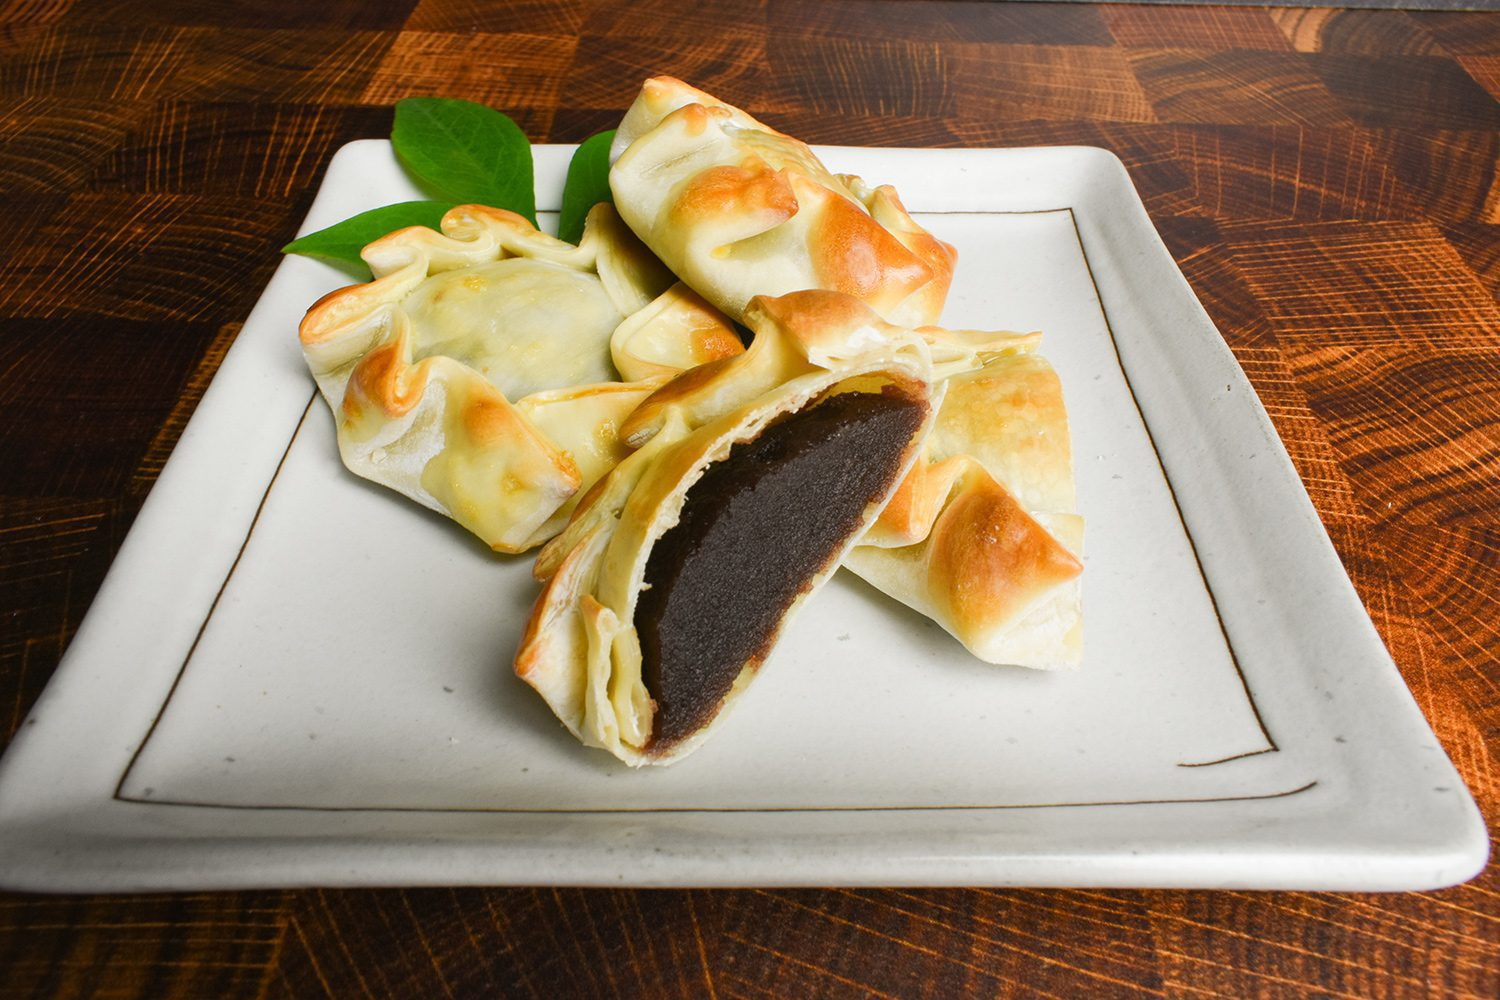 Empanadas, originated in Spain and Portugal, using gyoza wrapper filling with red bean